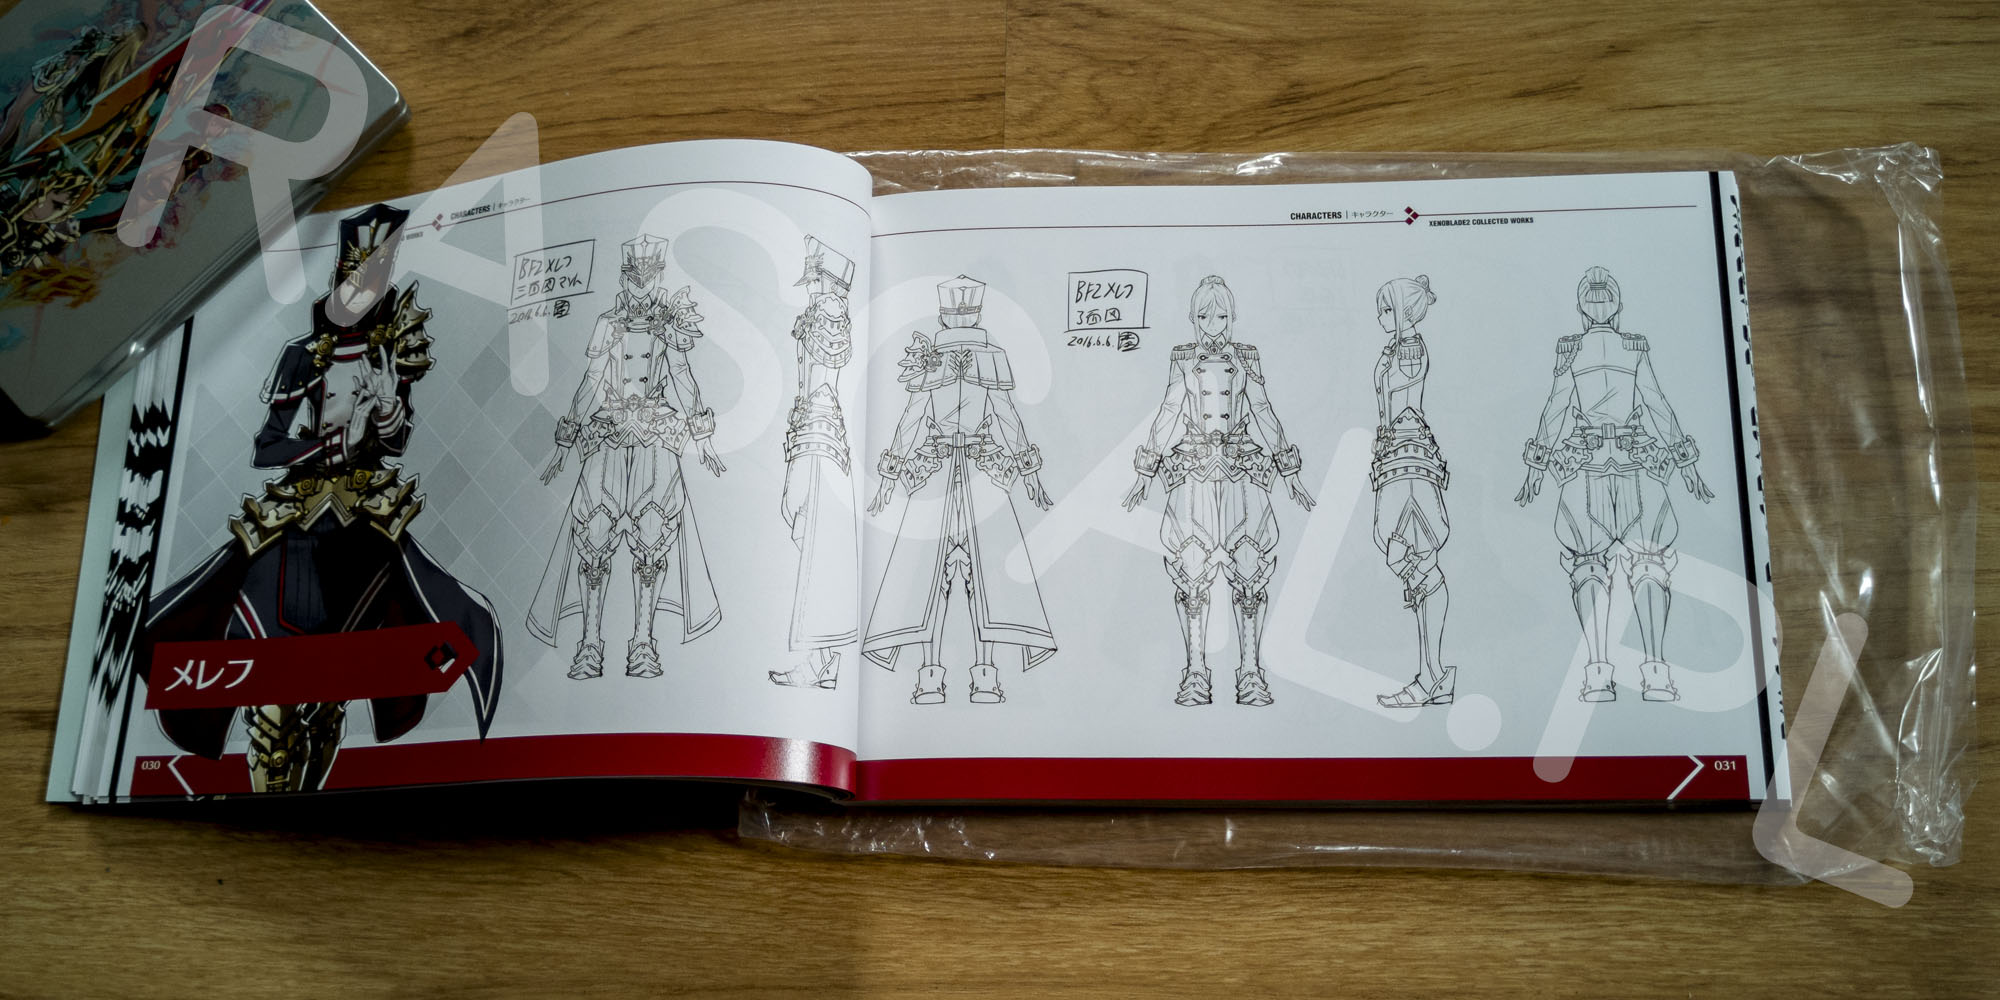 Xenoblade Chronicles 2 Collectors Edition Artbook - 06 - Meleph